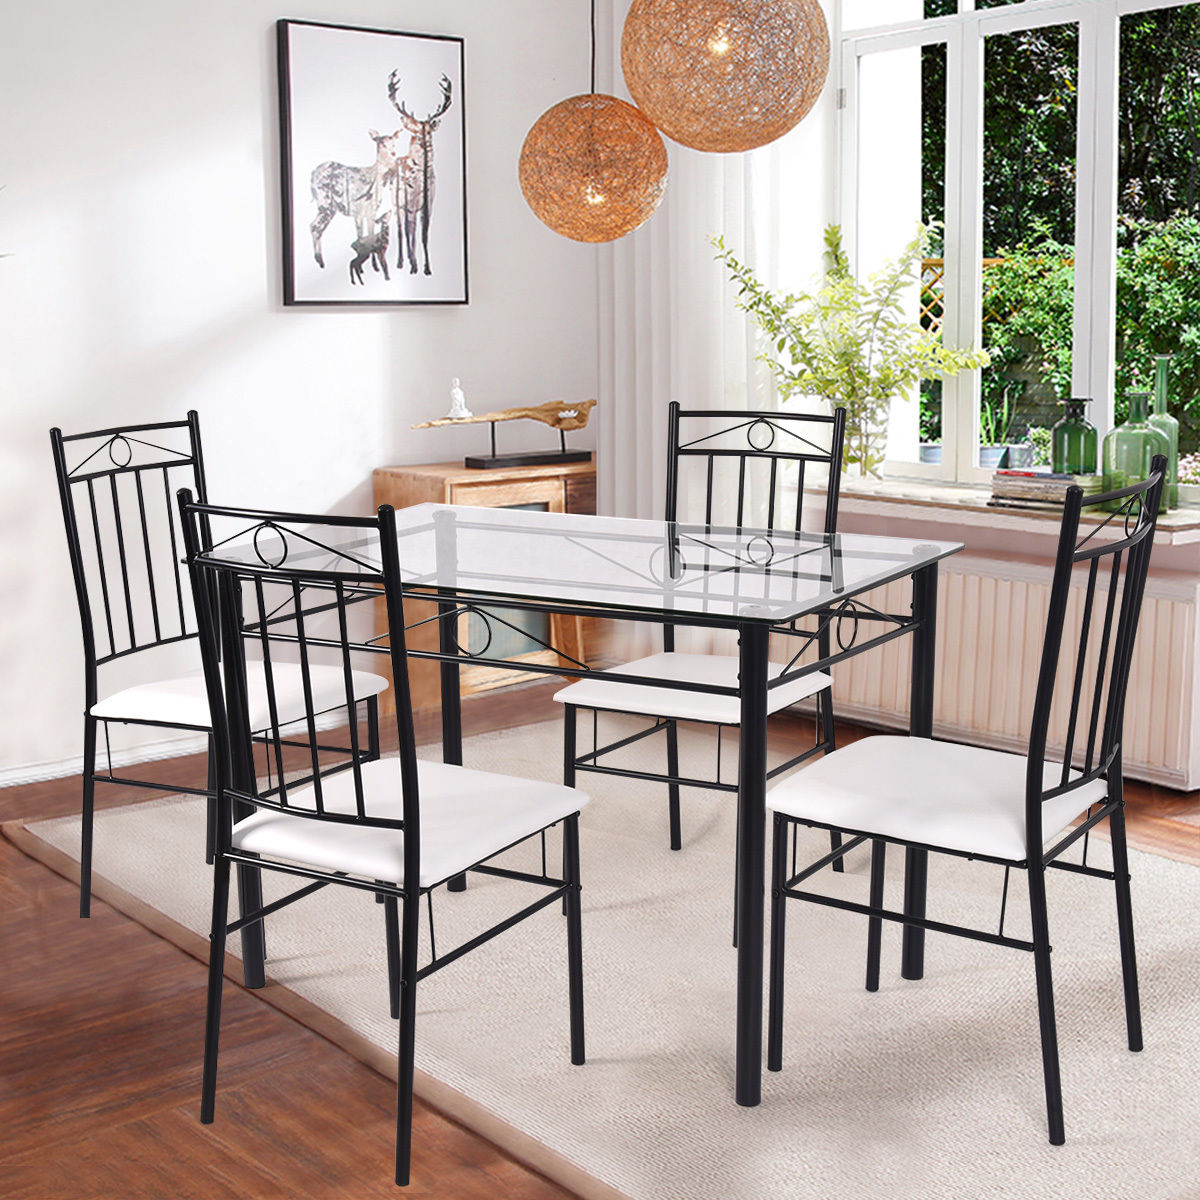 Costway 5 Piece Dining Set Glass Metal Table And 4 Chairs Kitchen Breakfast  Furniture   Walmart.com